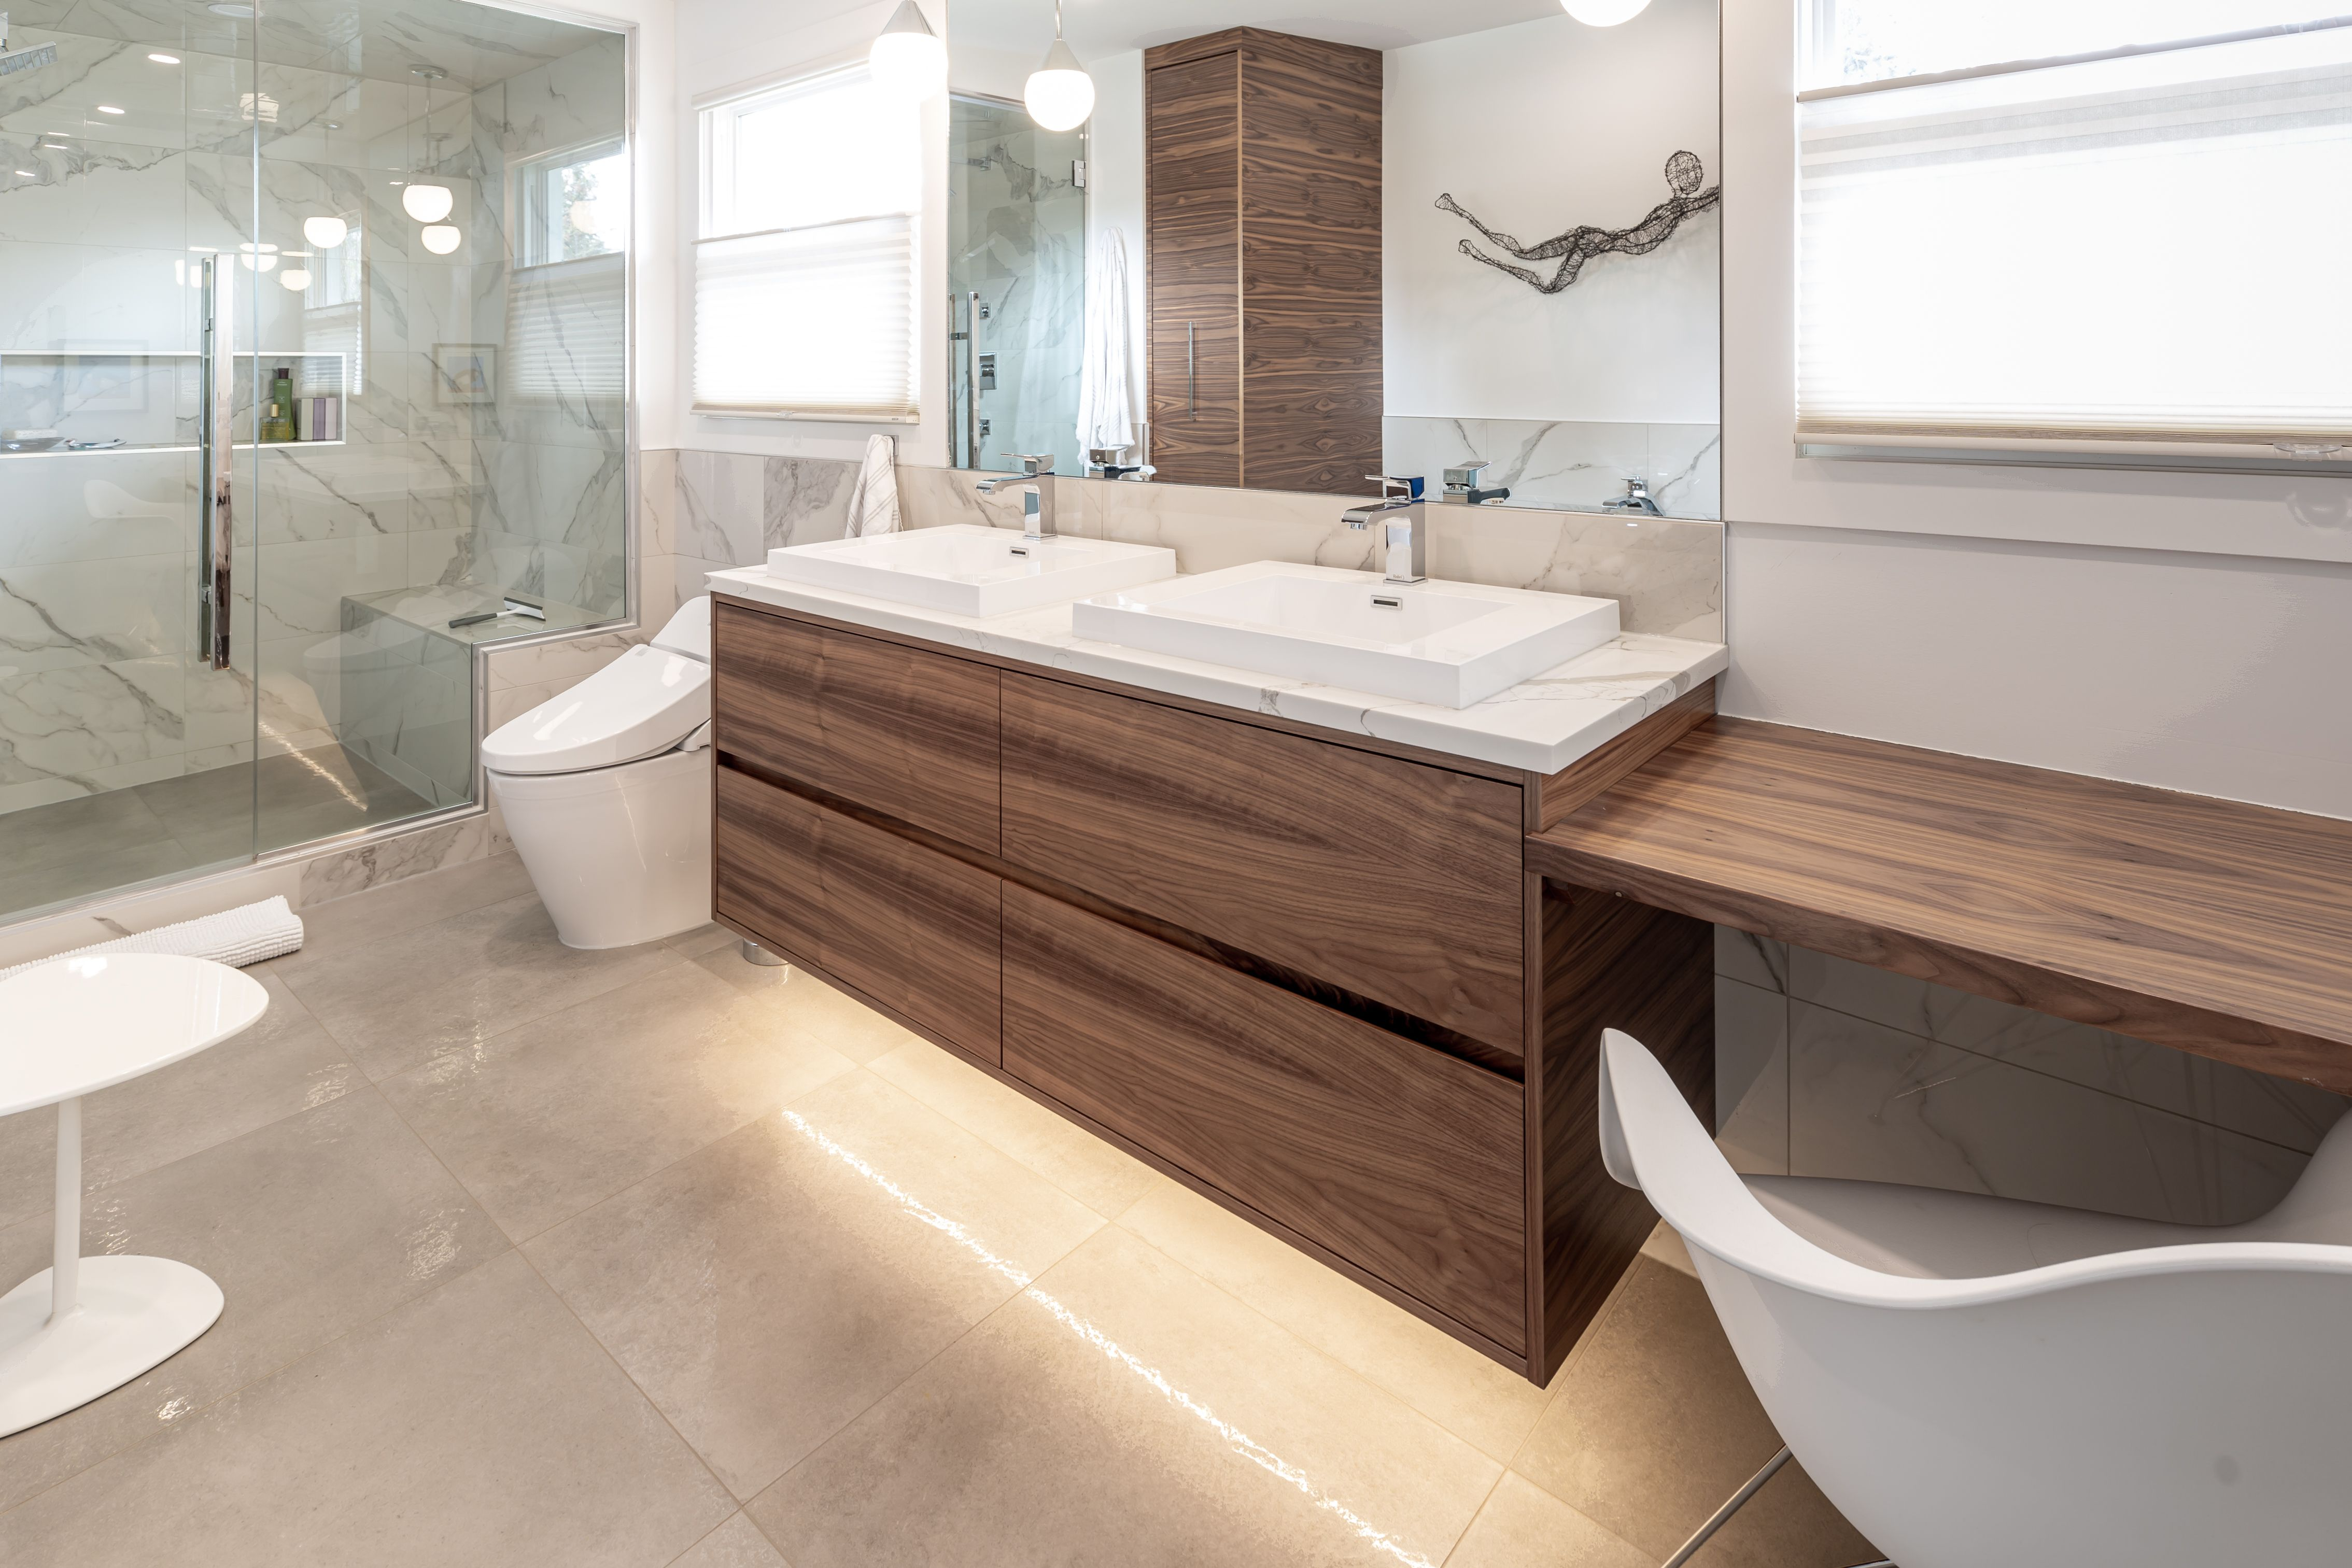 Custom Cabinets In Edmonton Ab This Spa Bathroom Features Floating Walnut Cabinetry We Can Make Your Dreams A Reali Custom Cabinets Cabinetry Bathroom Spa